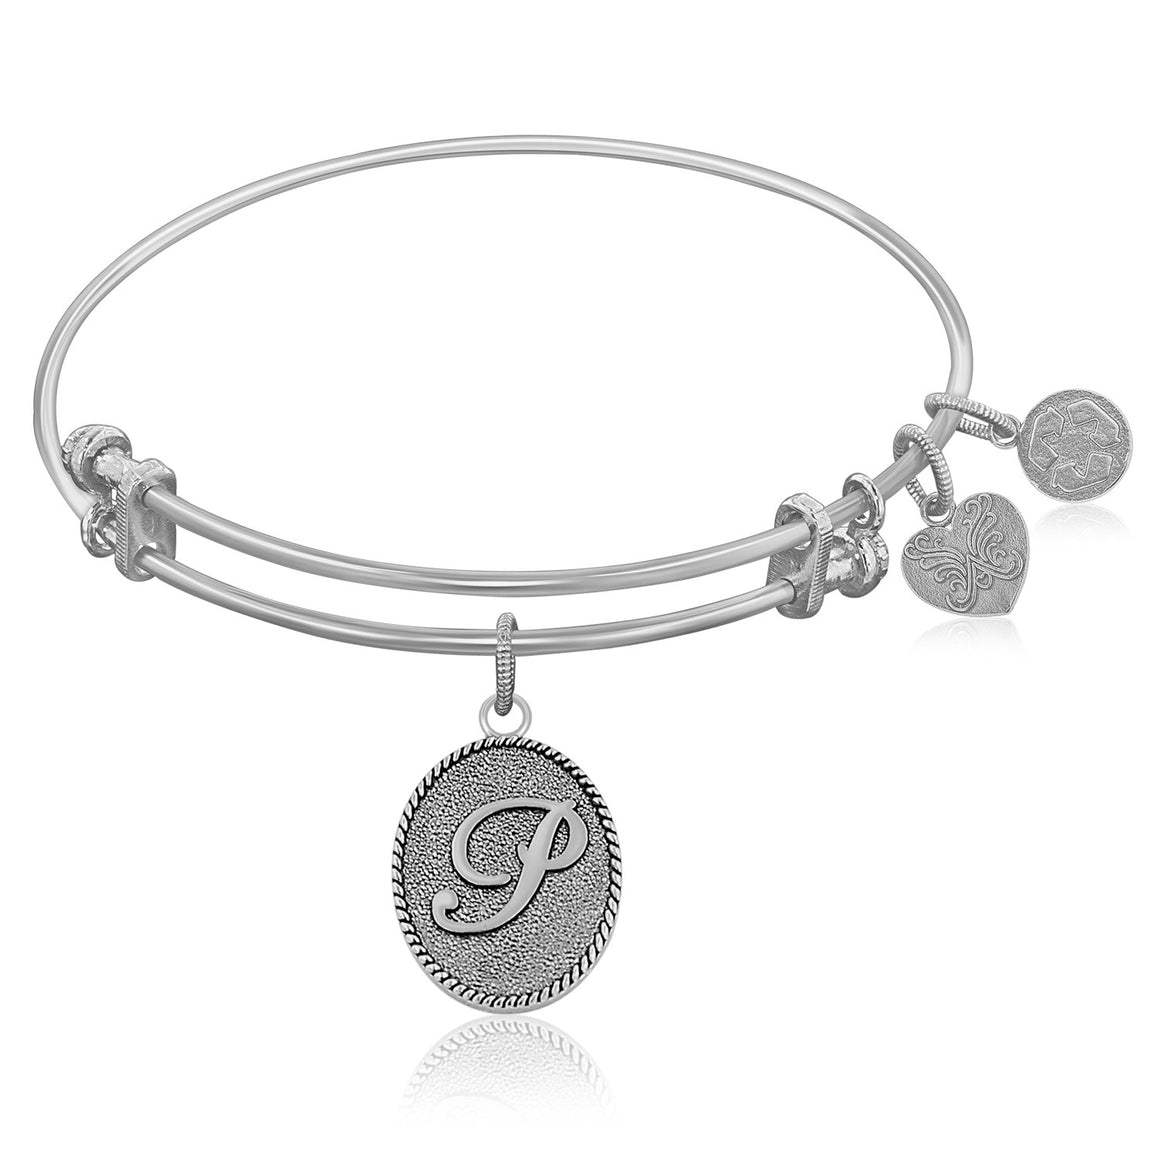 Expandable Bangle in White Tone Brass with Initial P Symbol